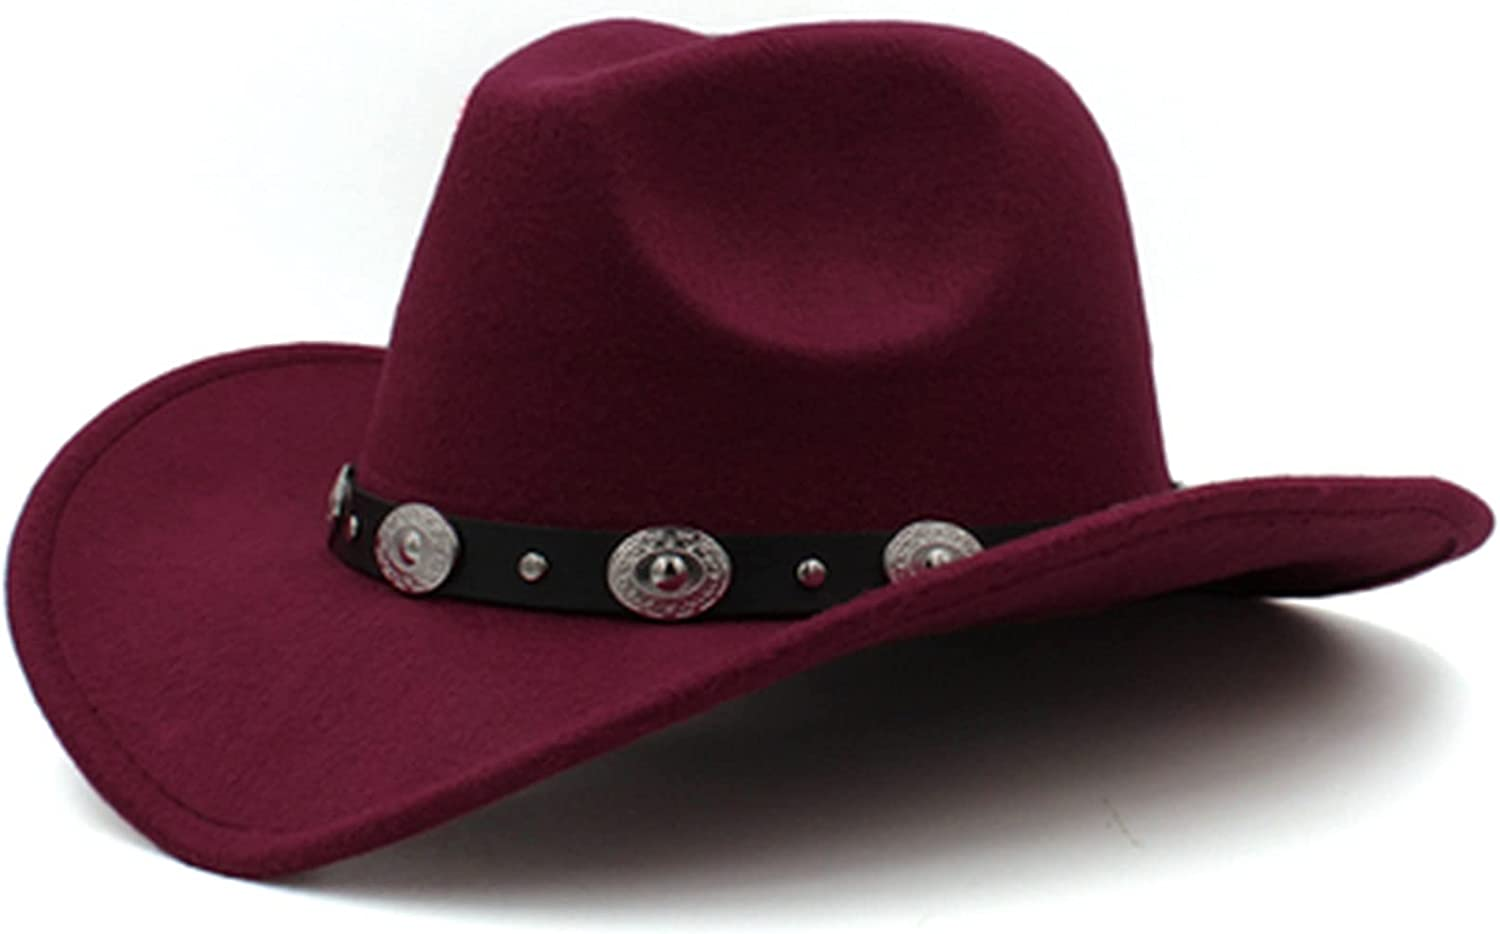 QQSA Men's Western Cowboy Hat Rolled Cowgirl Outlet sale feature Edge Women's Popular standard